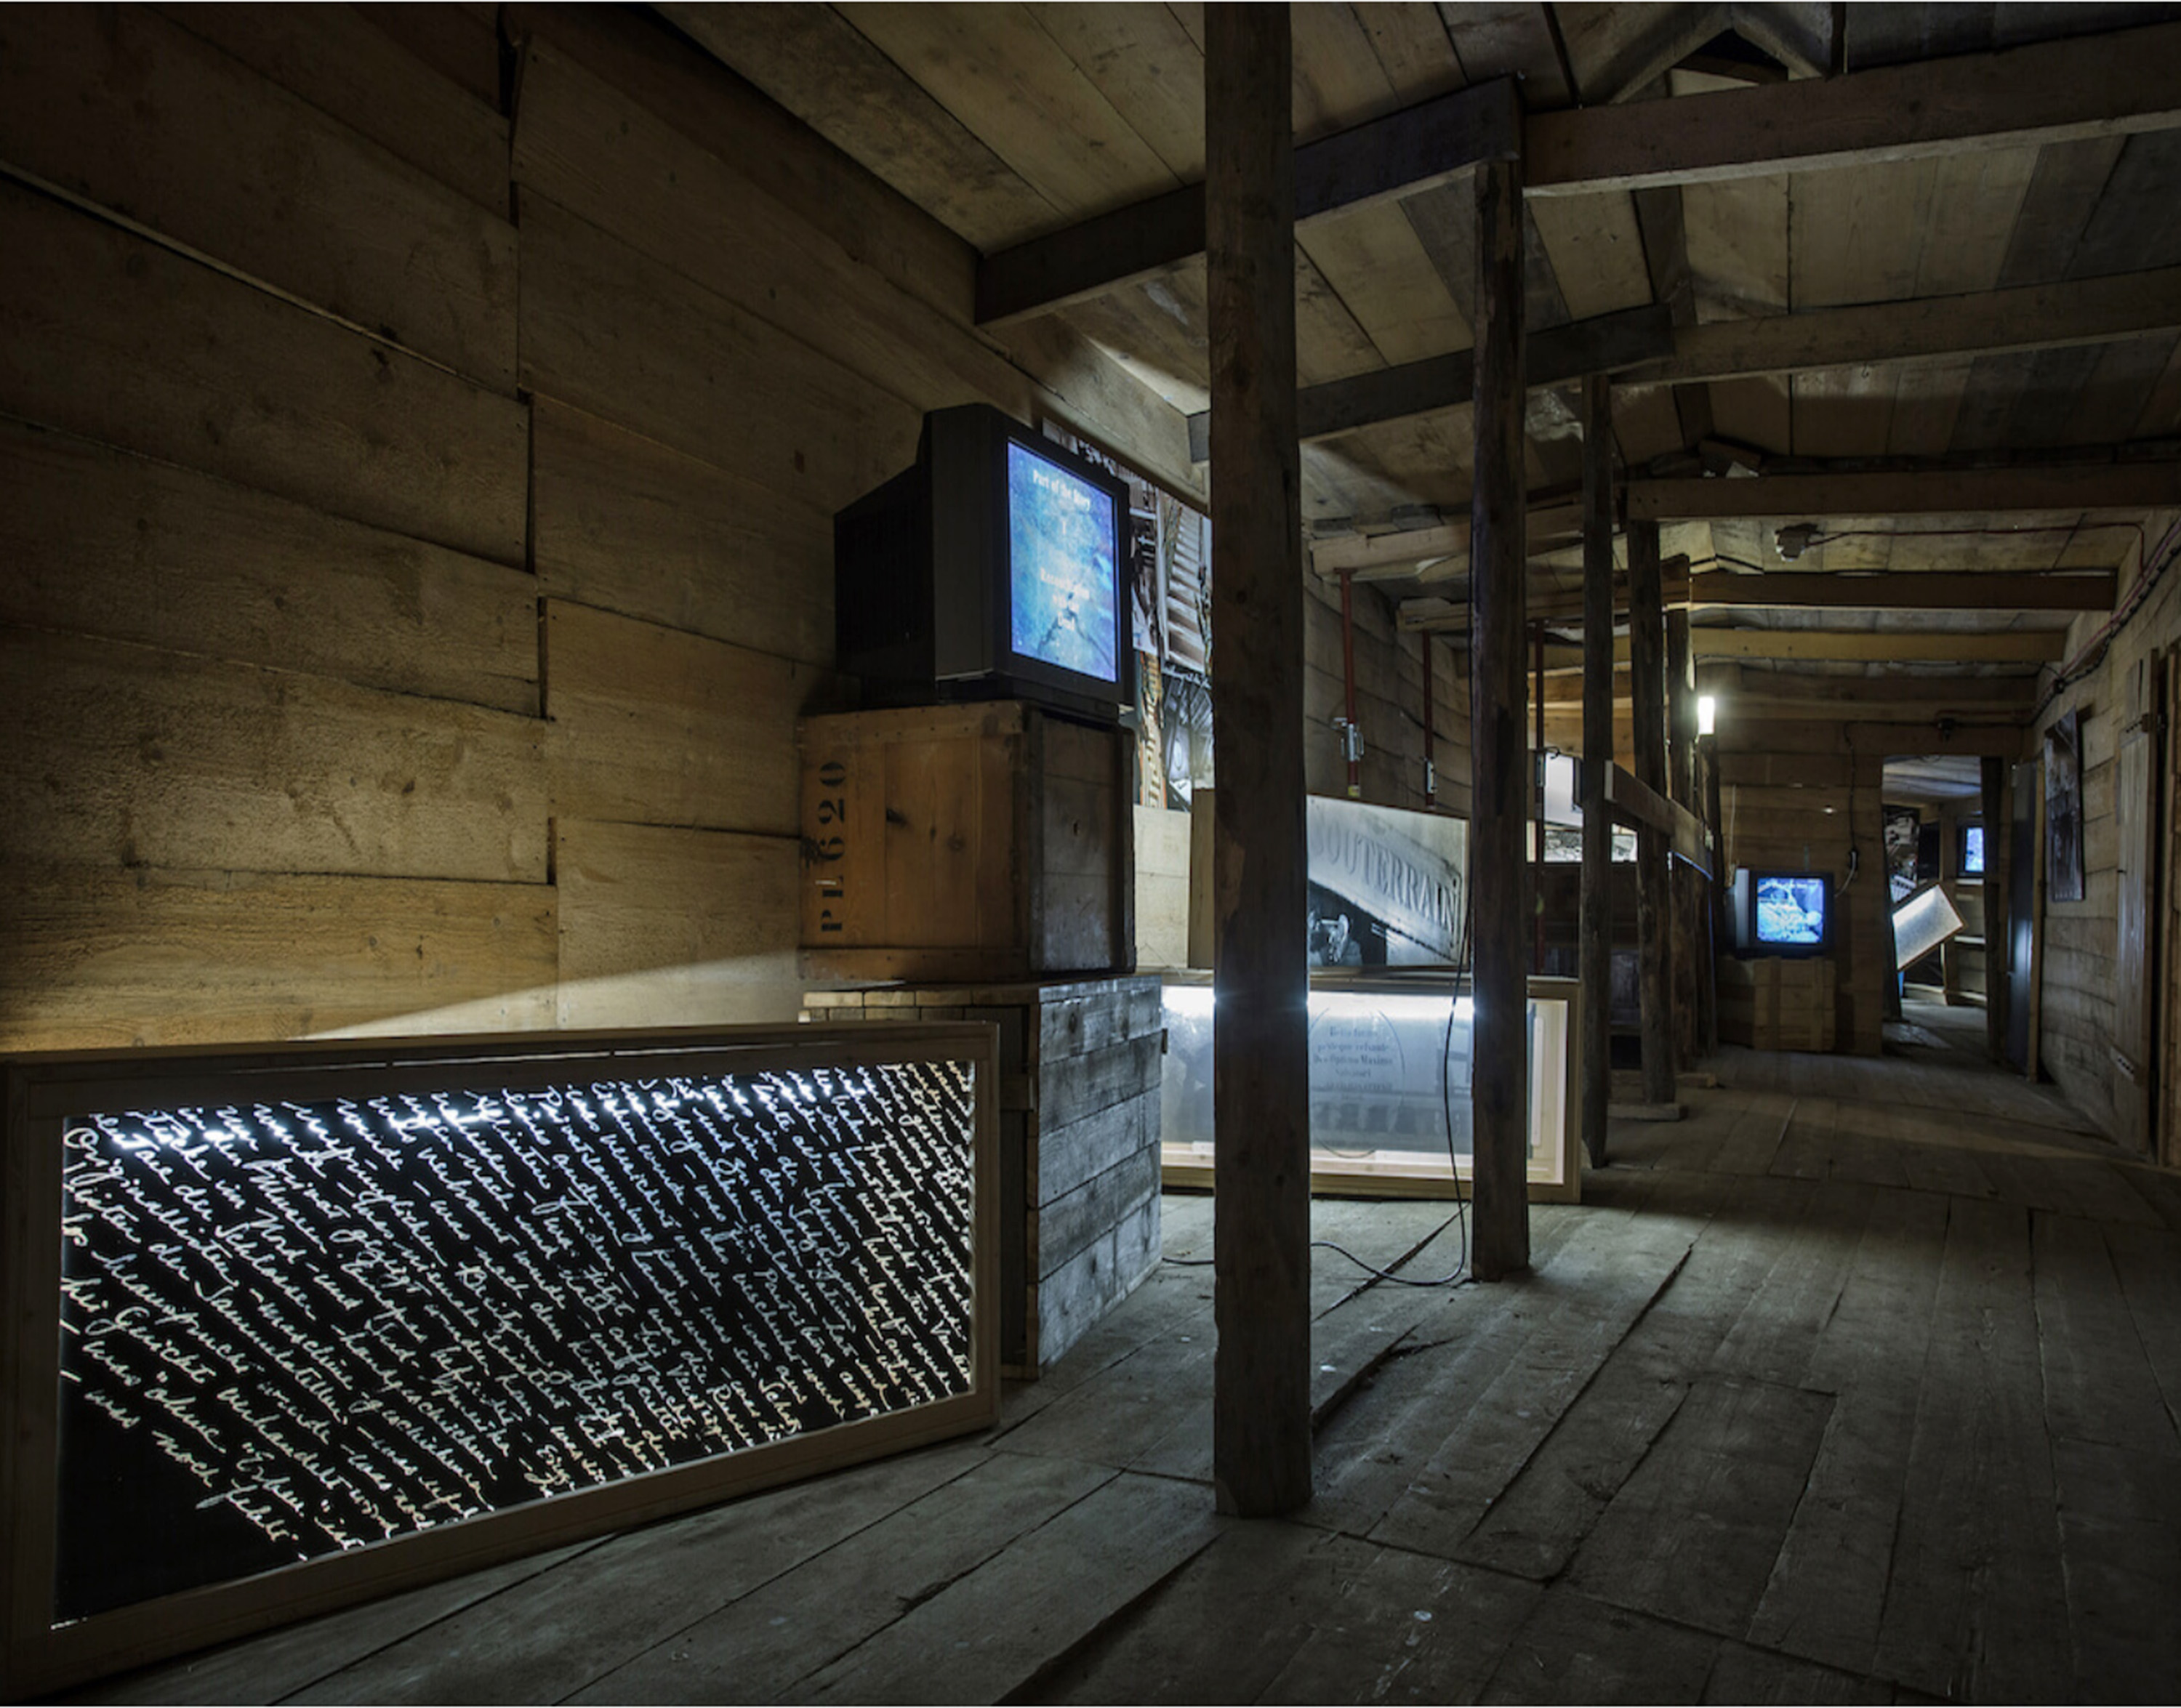 This photo shows a section of the exhibition Body Missing, by Vera Frenkel. Several lightboxes are arranged in a room whose walls and floor are made of wide wooden planks. A video monitor sits on two stacked crates.